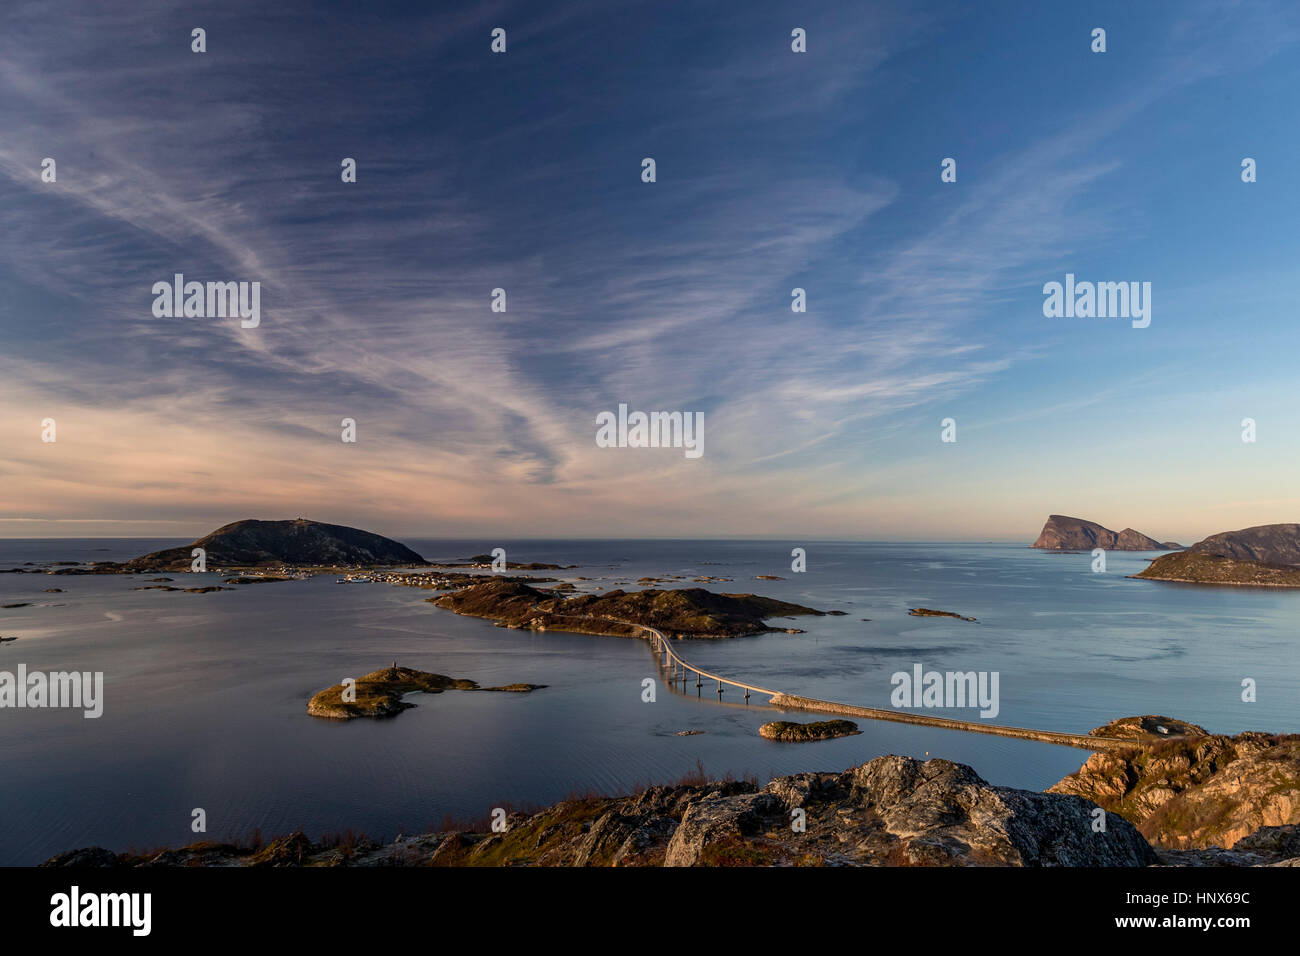 View of famous Sommaroy Bridge crossing from Kvaloya Island to Sommaroy Island in autumn, Arctic Norway Stock Photo